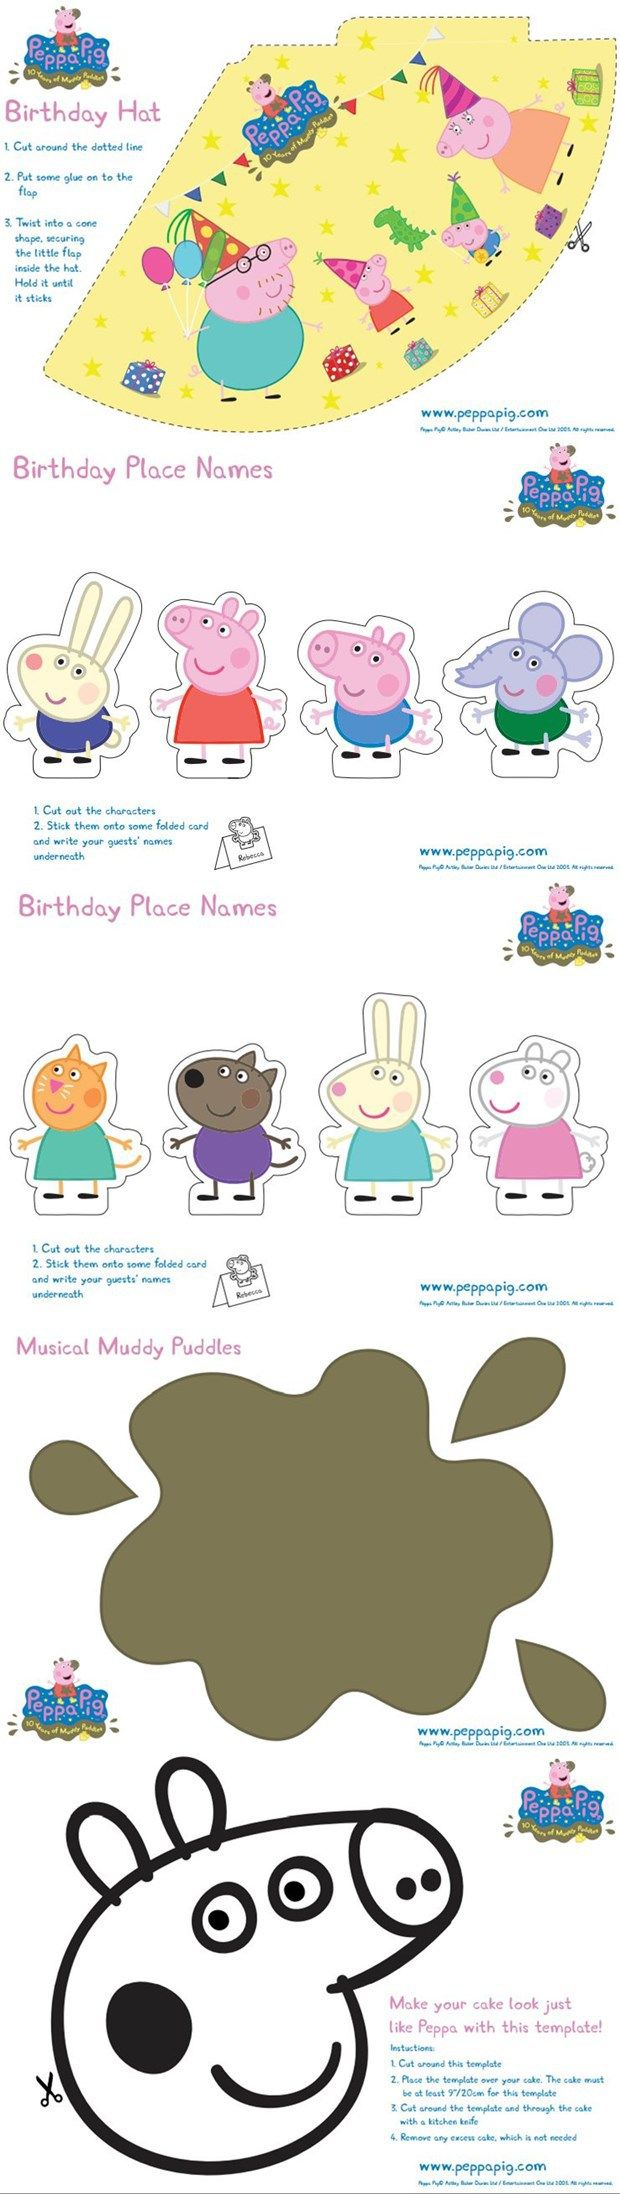 "Top 10 ""Oink Oink"" Peppa Pig Birthday Party Ideas"